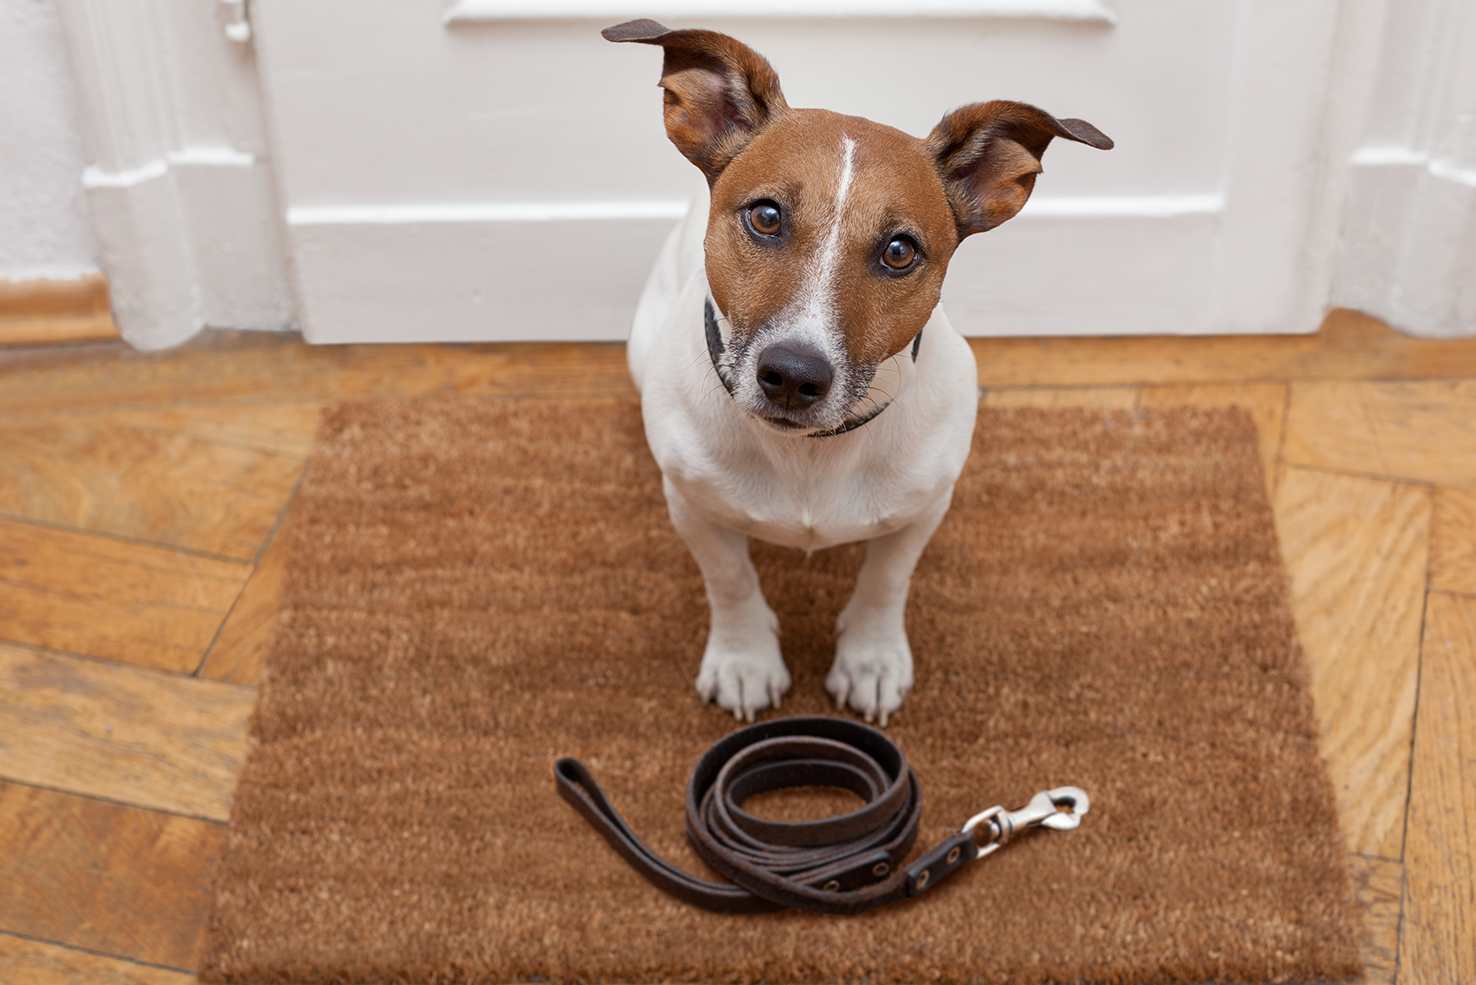 The Best Leash For A Dog Walk